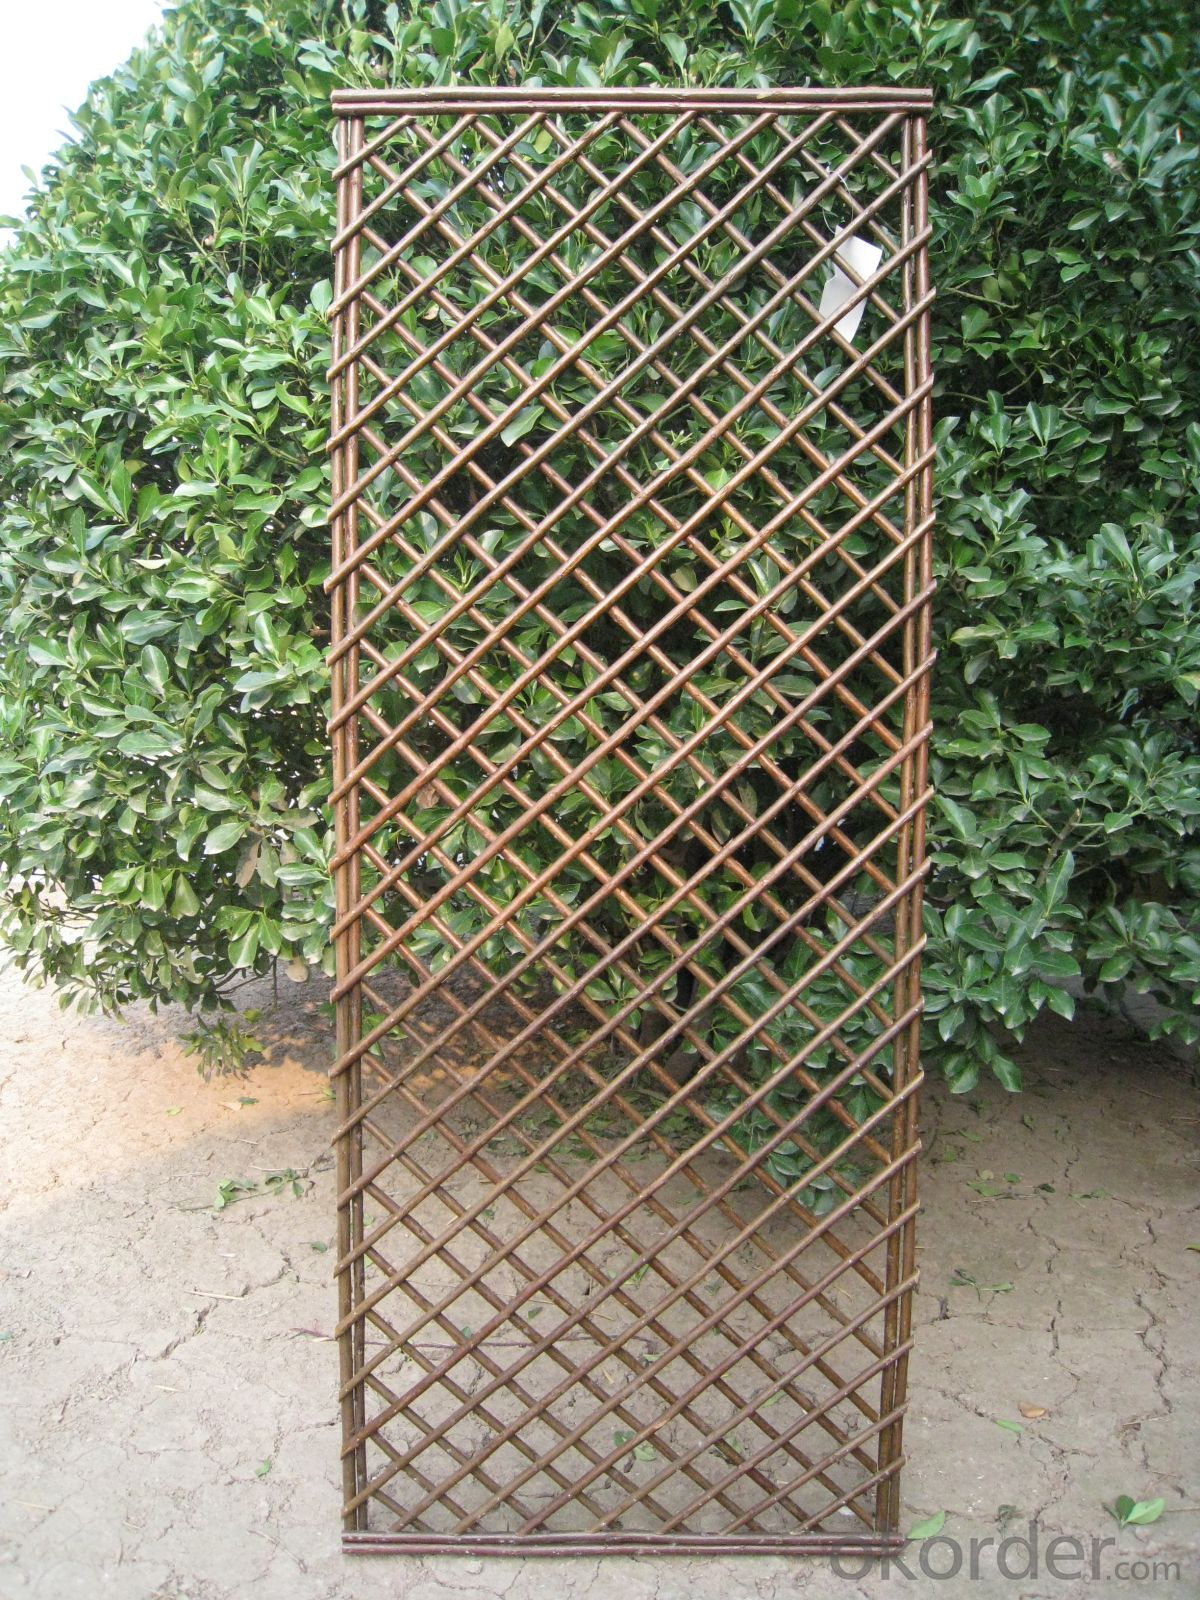 WILLOW TRELLIS FENCE SCREEN EURO